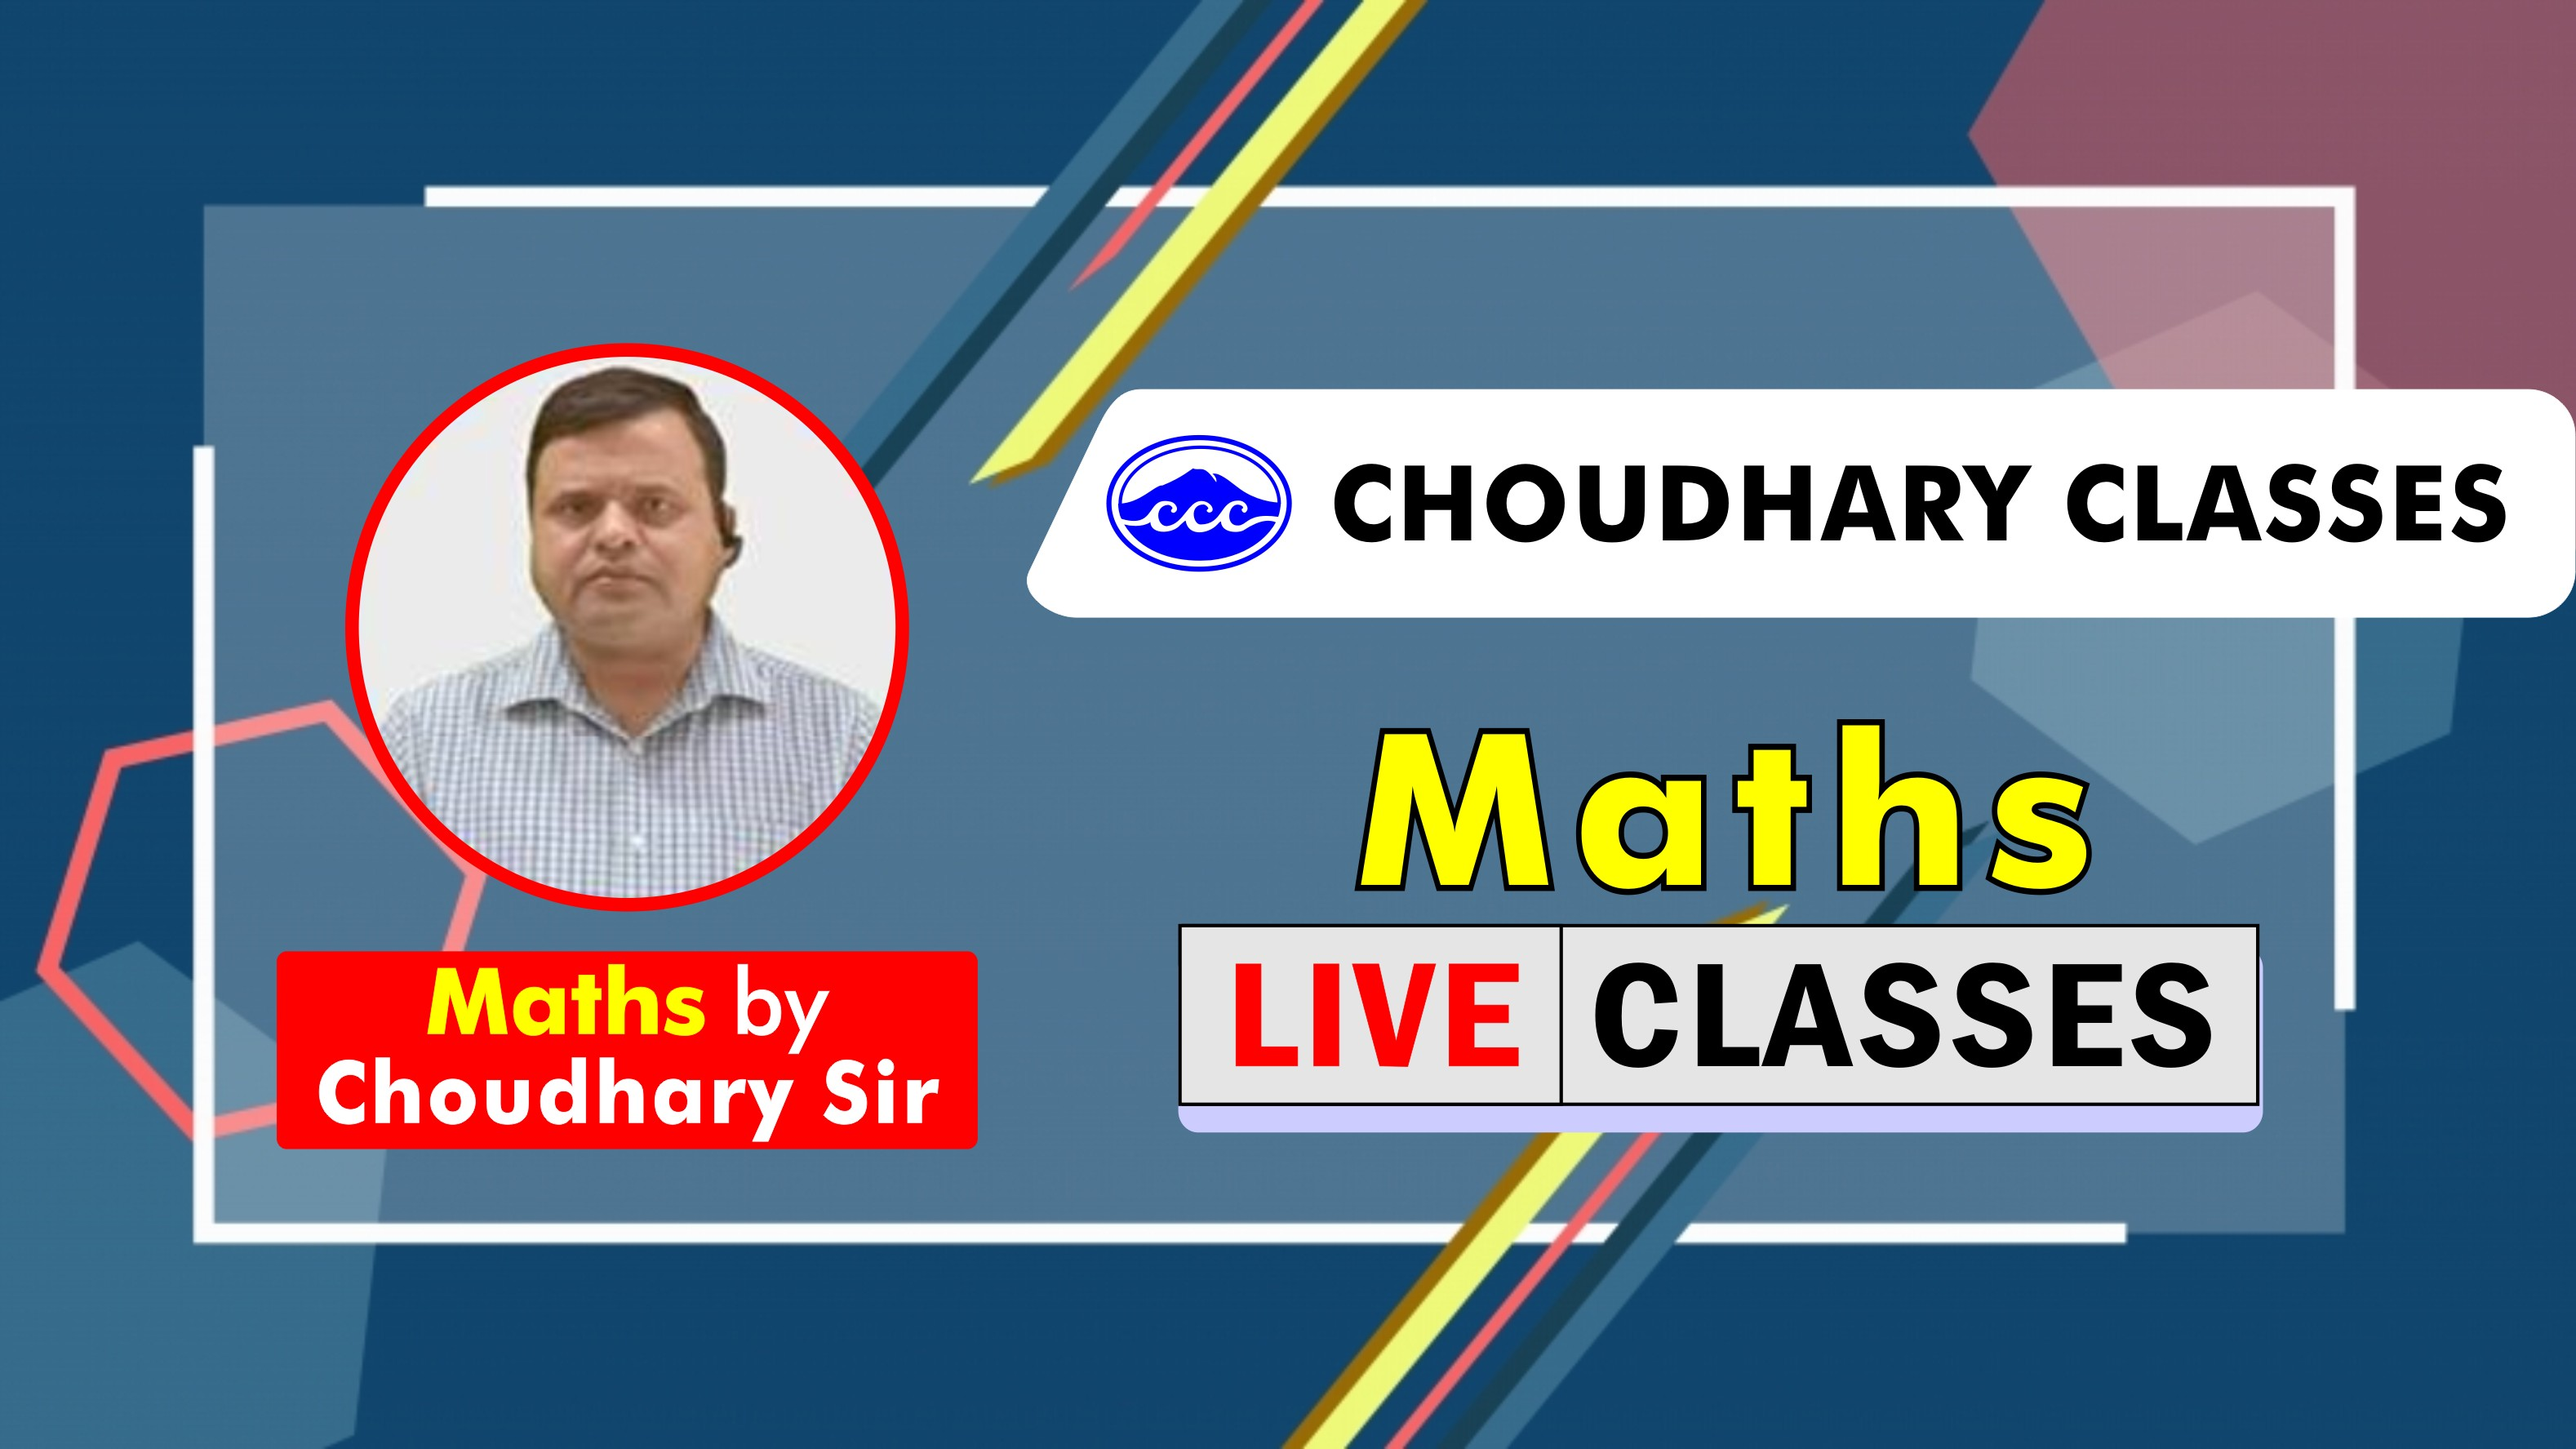 Session : 44 | Percentage by Choudhary Sir